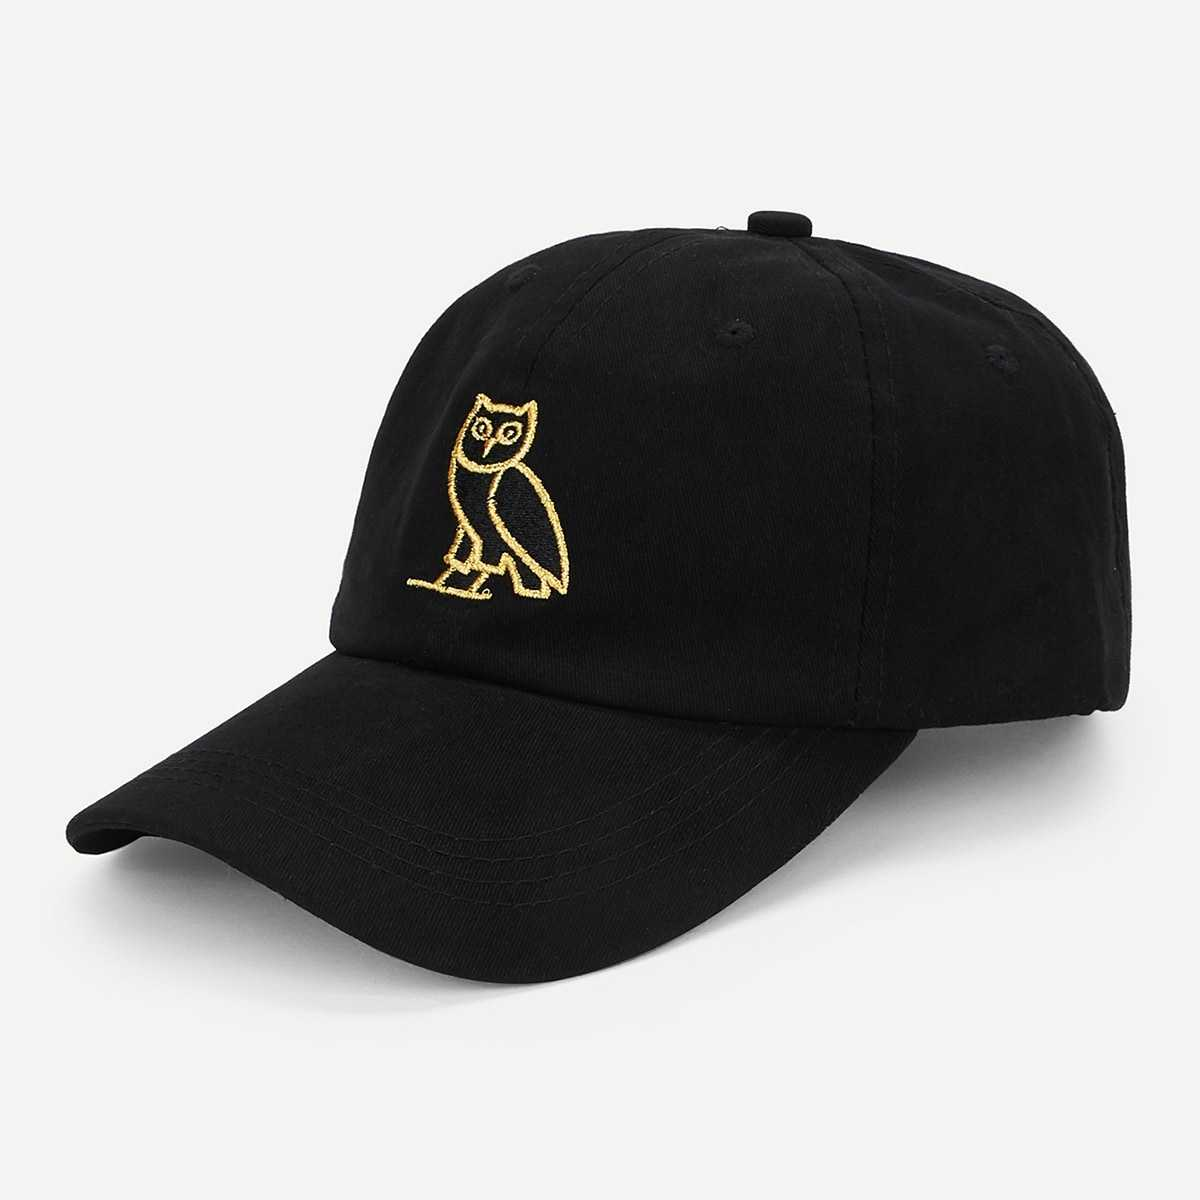 Owl Embroidery Baseball Cap in Black by ROMWE on GOOFASH